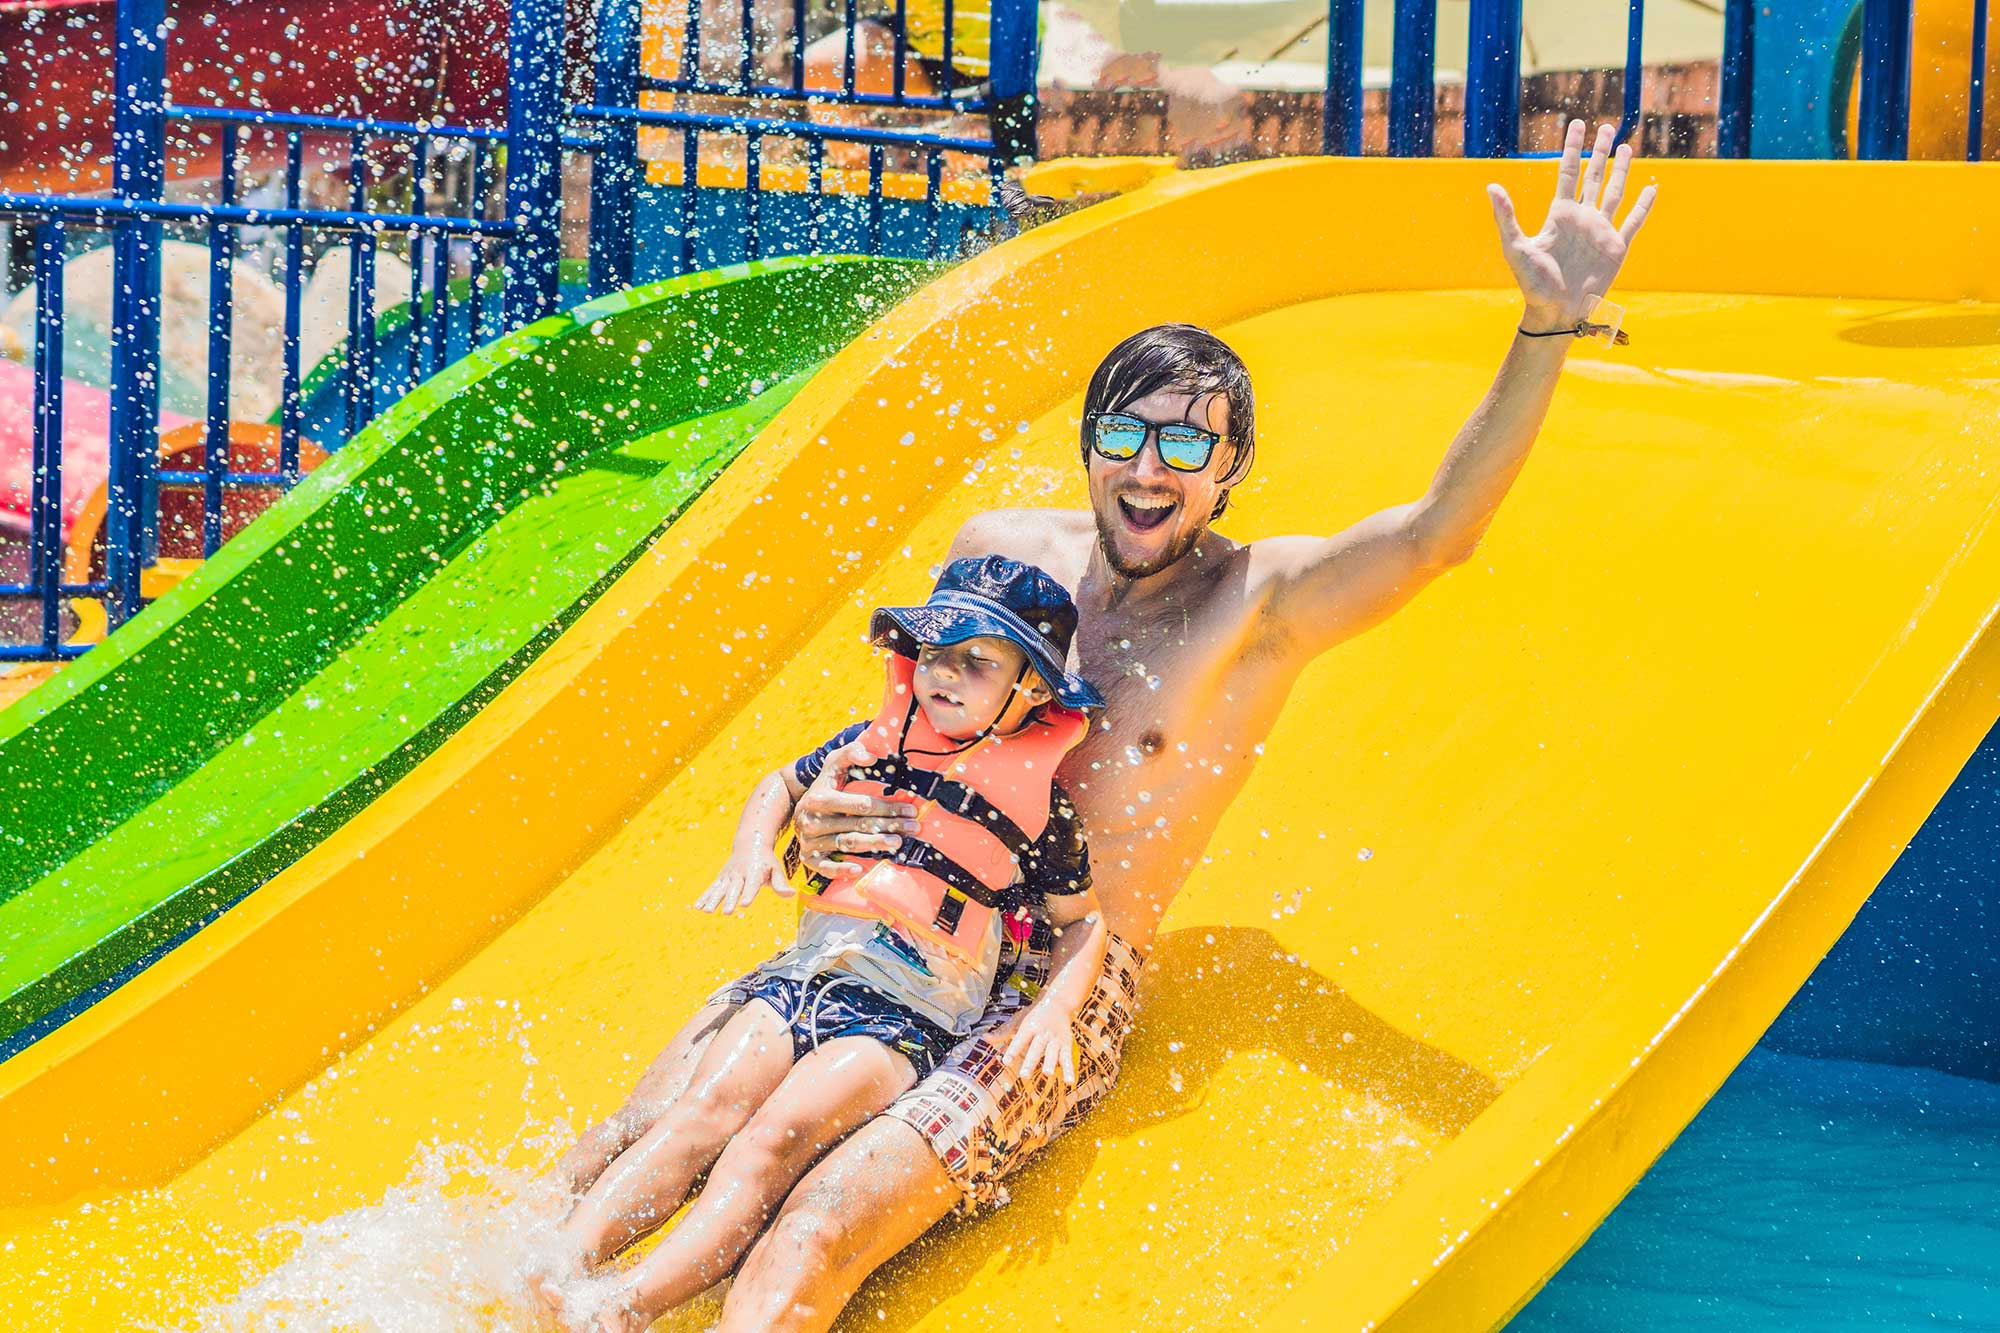 visit-one-of-these-exciting-water-parks-this-summer